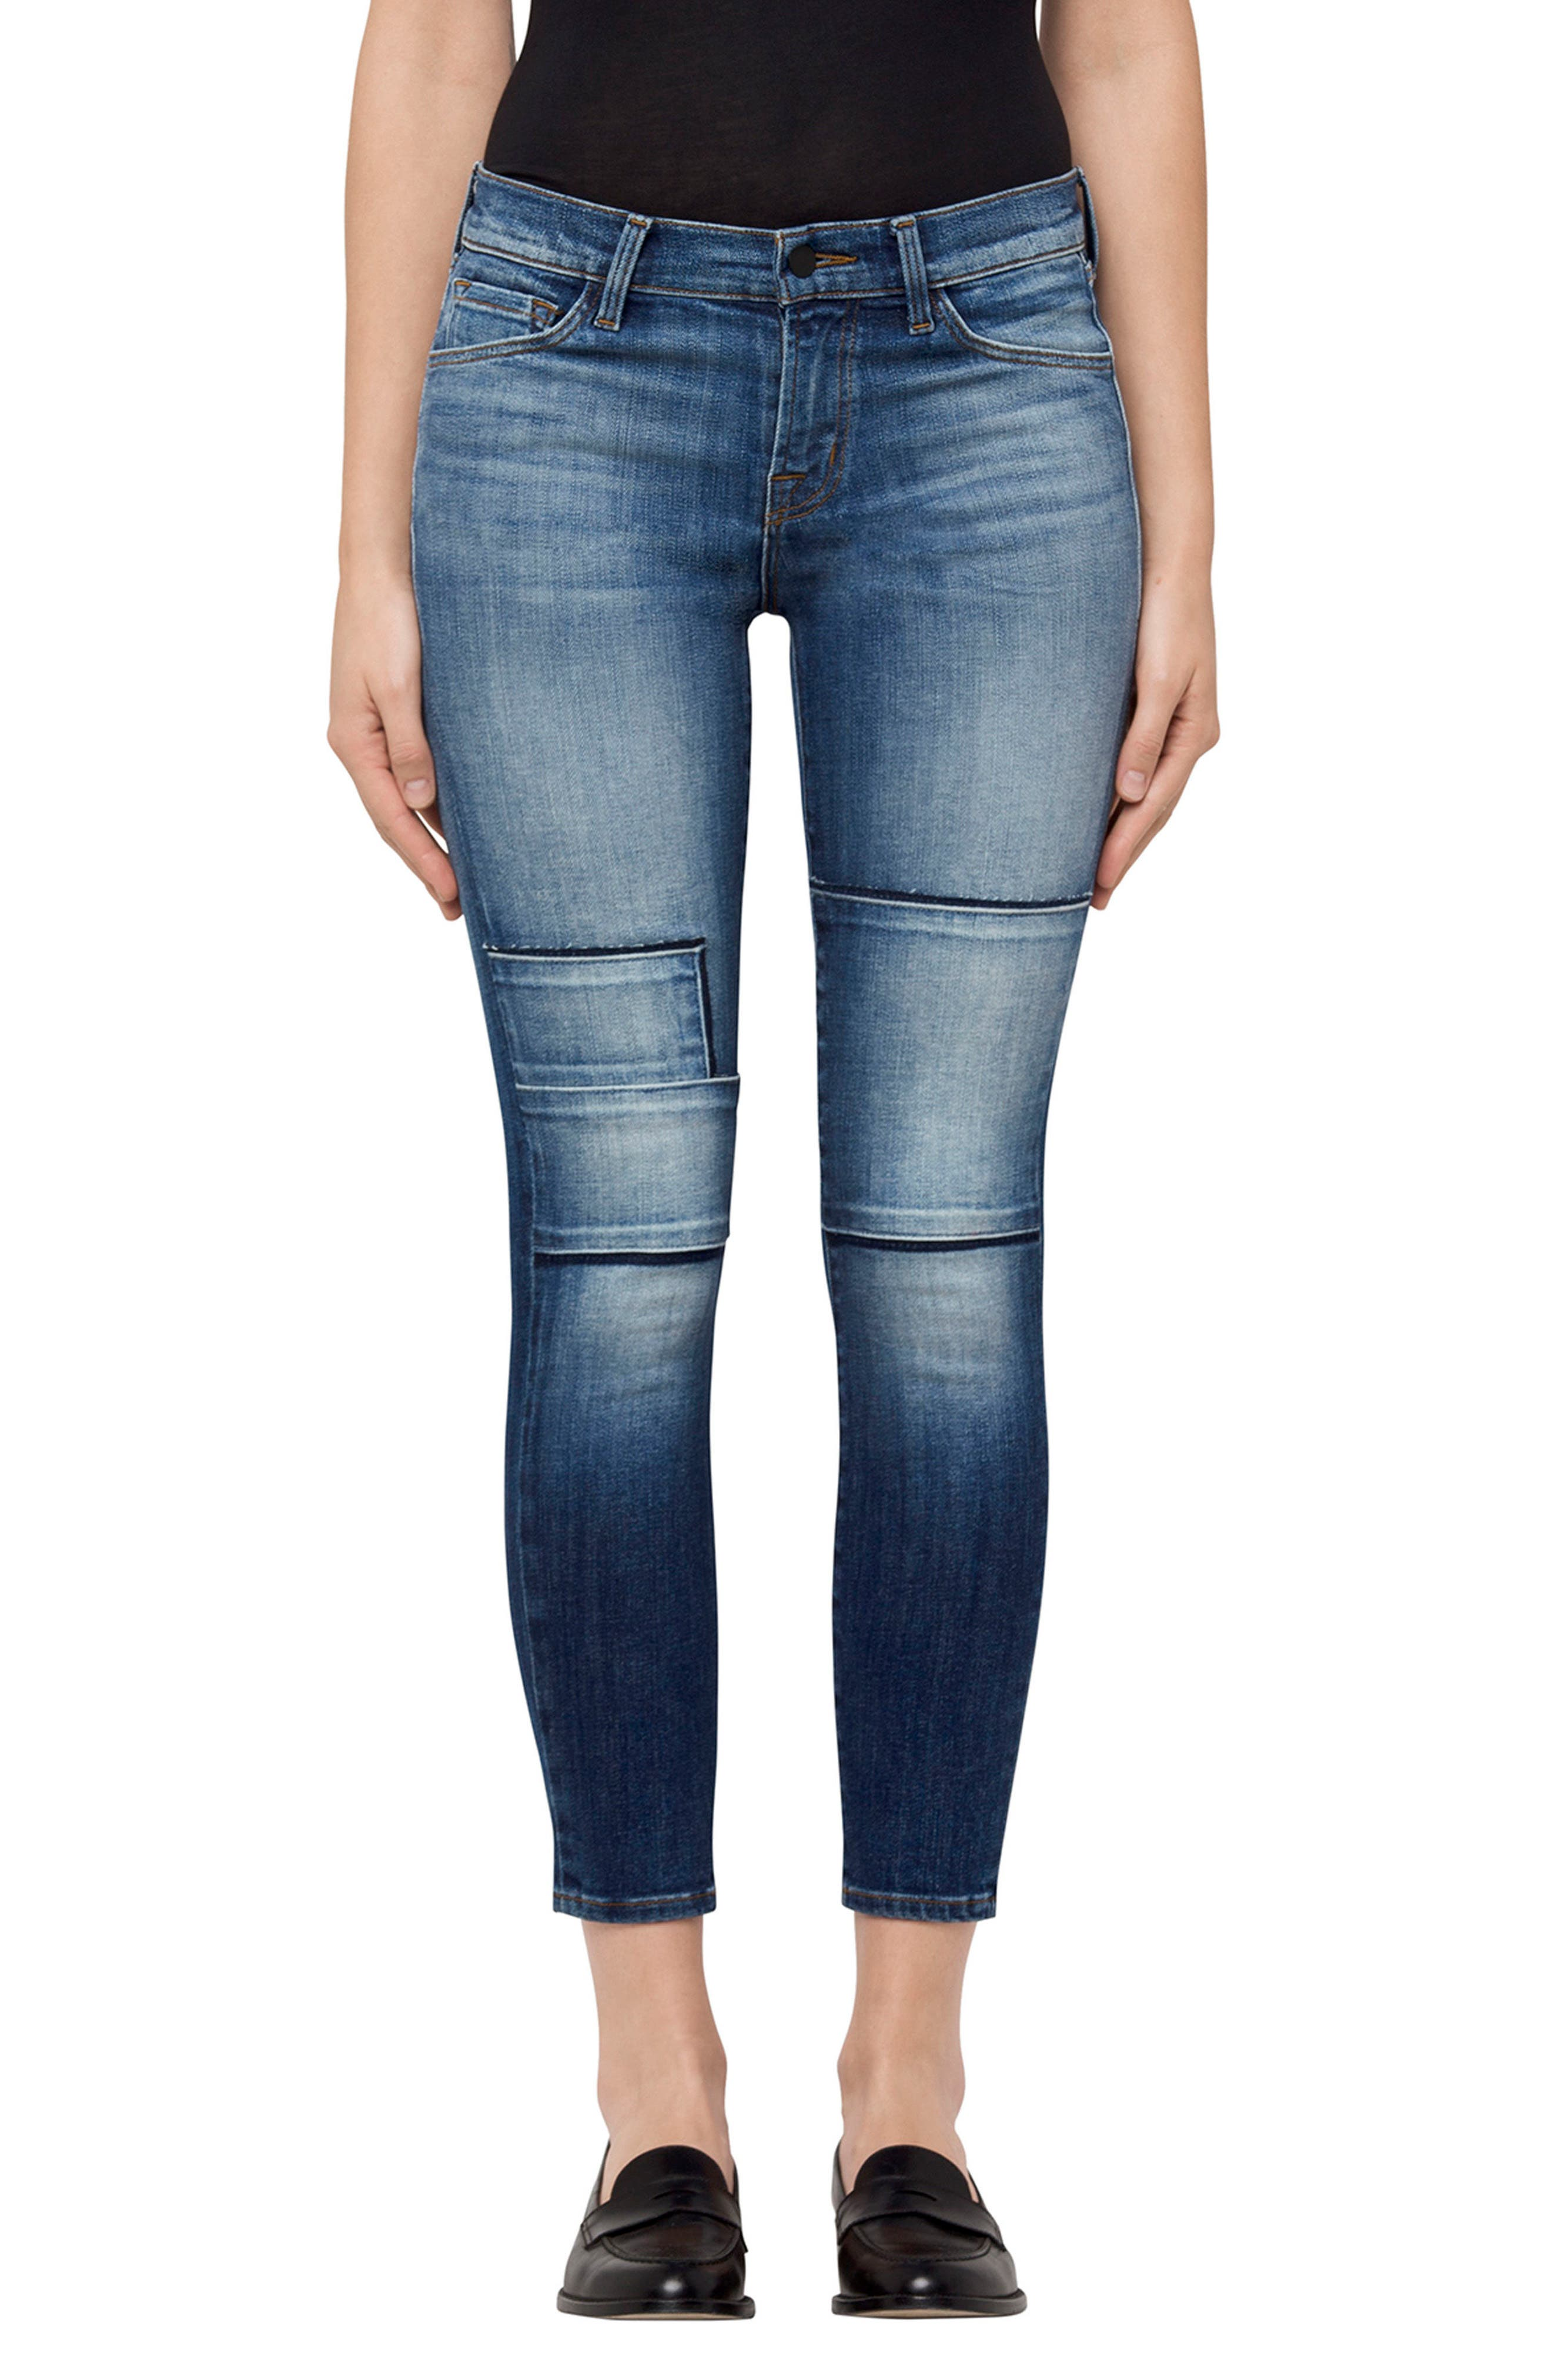 835 Crop Skinny Jeans,                             Main thumbnail 1, color,                             401